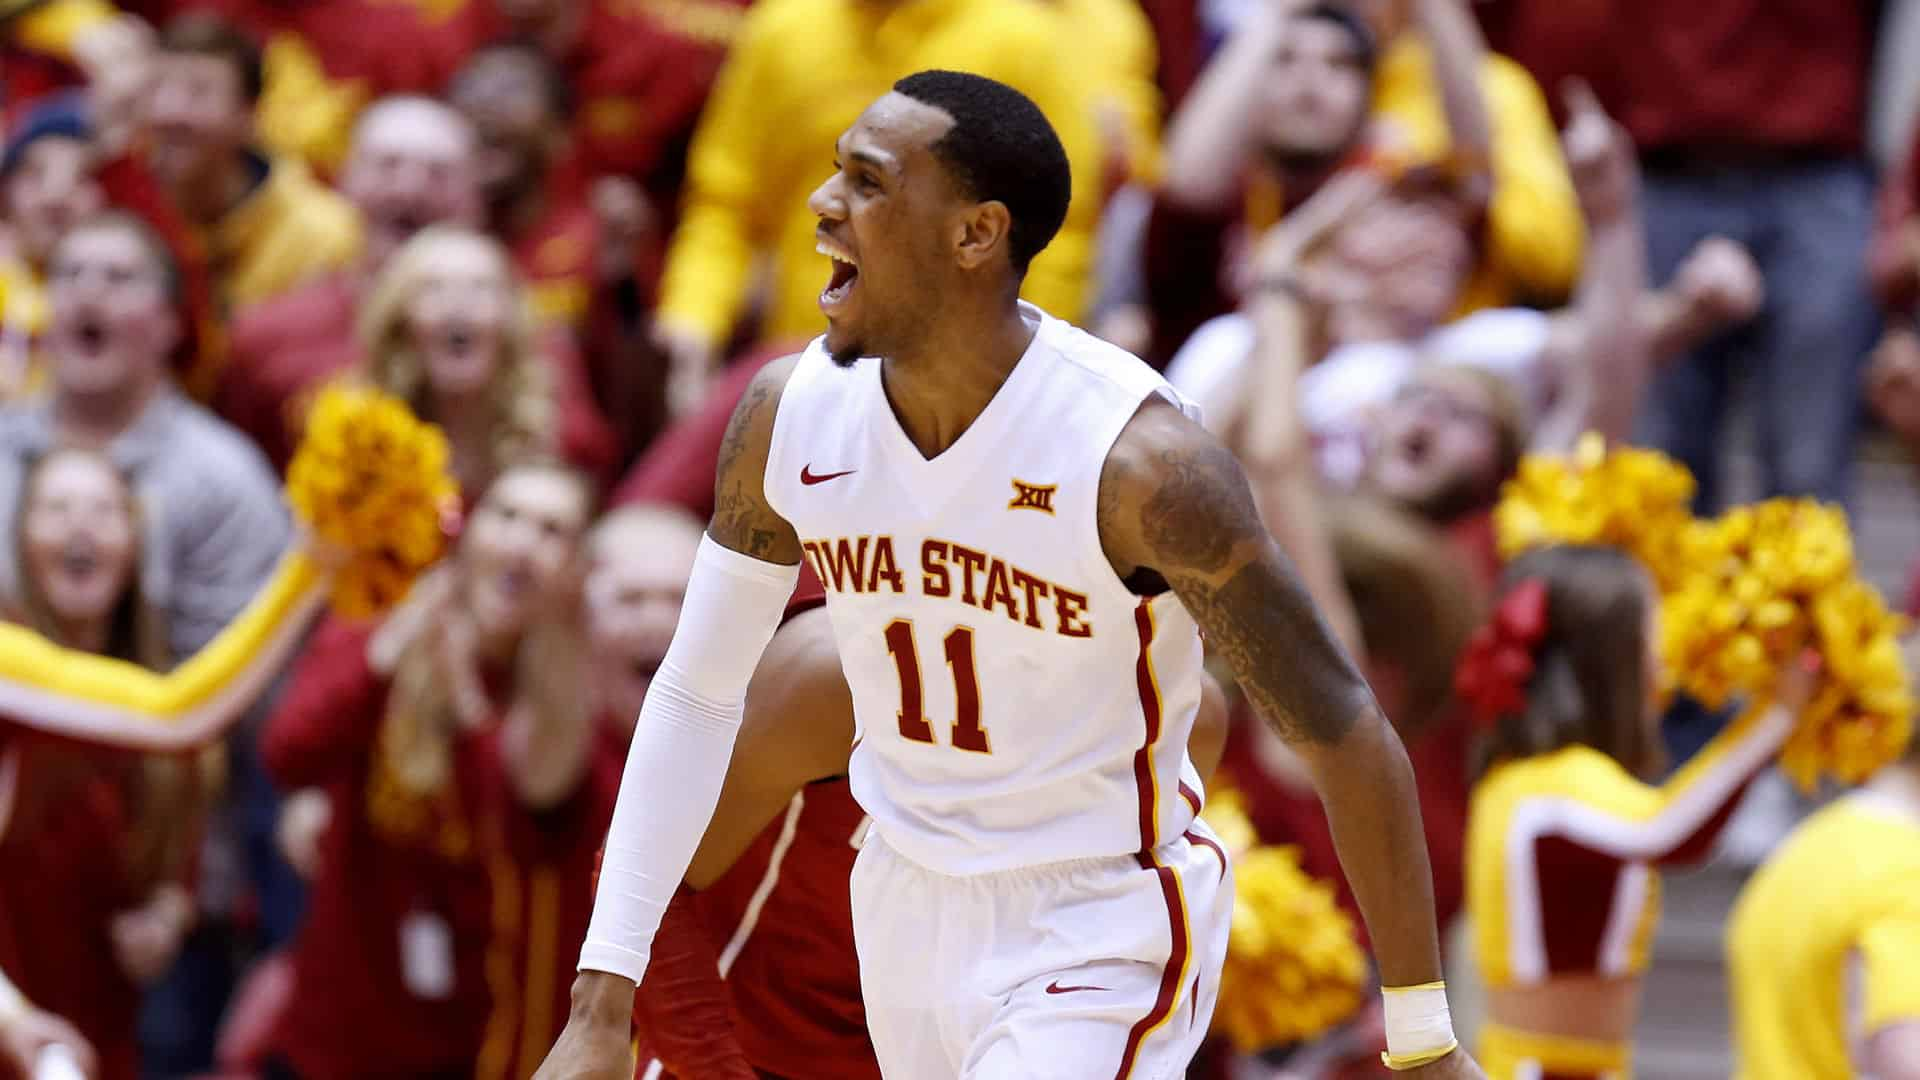 Ncaa basketball - Monte Morris (Iowa State)